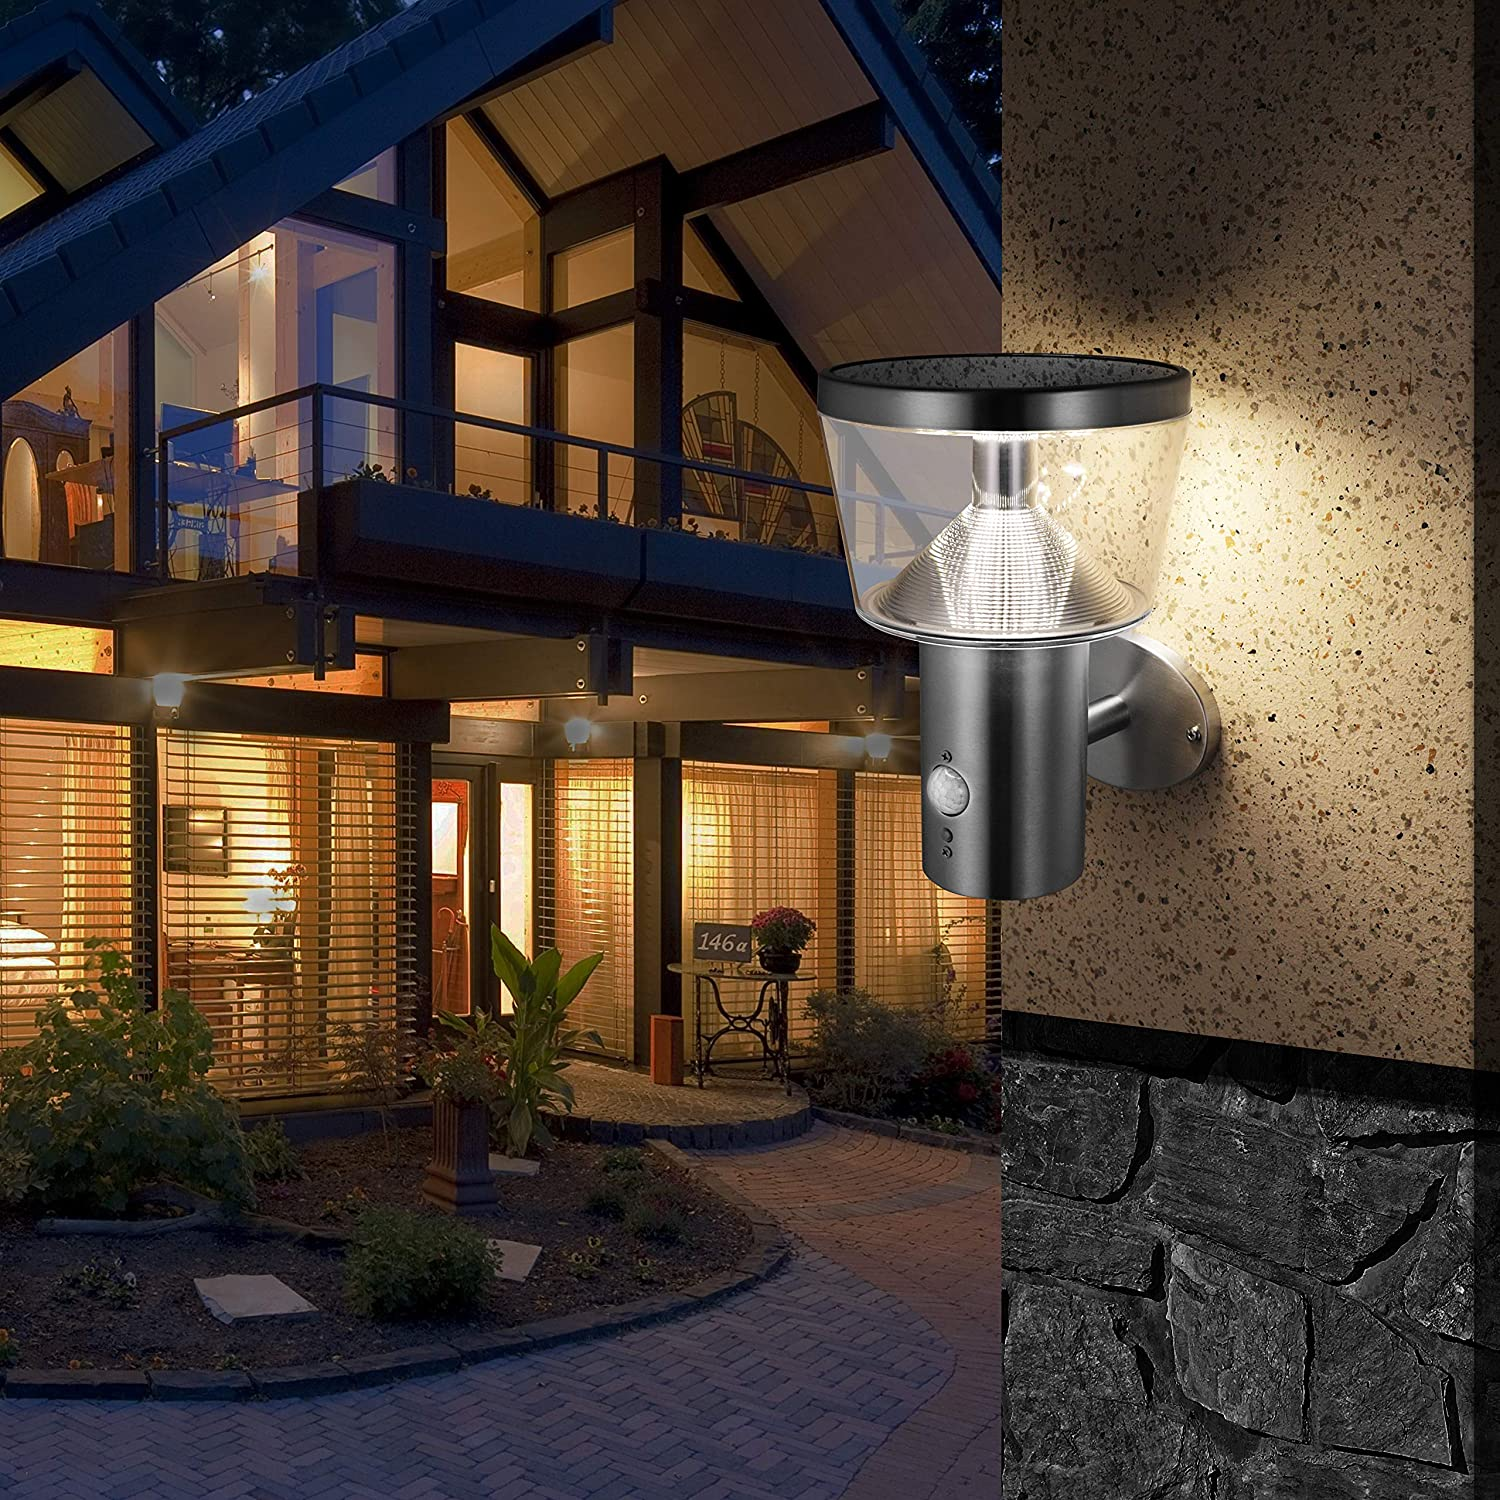 Stainless Steel Outdoor Sconce 4000K Natural White Solar Wall Light with Motion Sensor and Dust to Dawn Sensor LED Porch Lighting Fixture Silver Multiple Lighting Modes for Diverse Needs